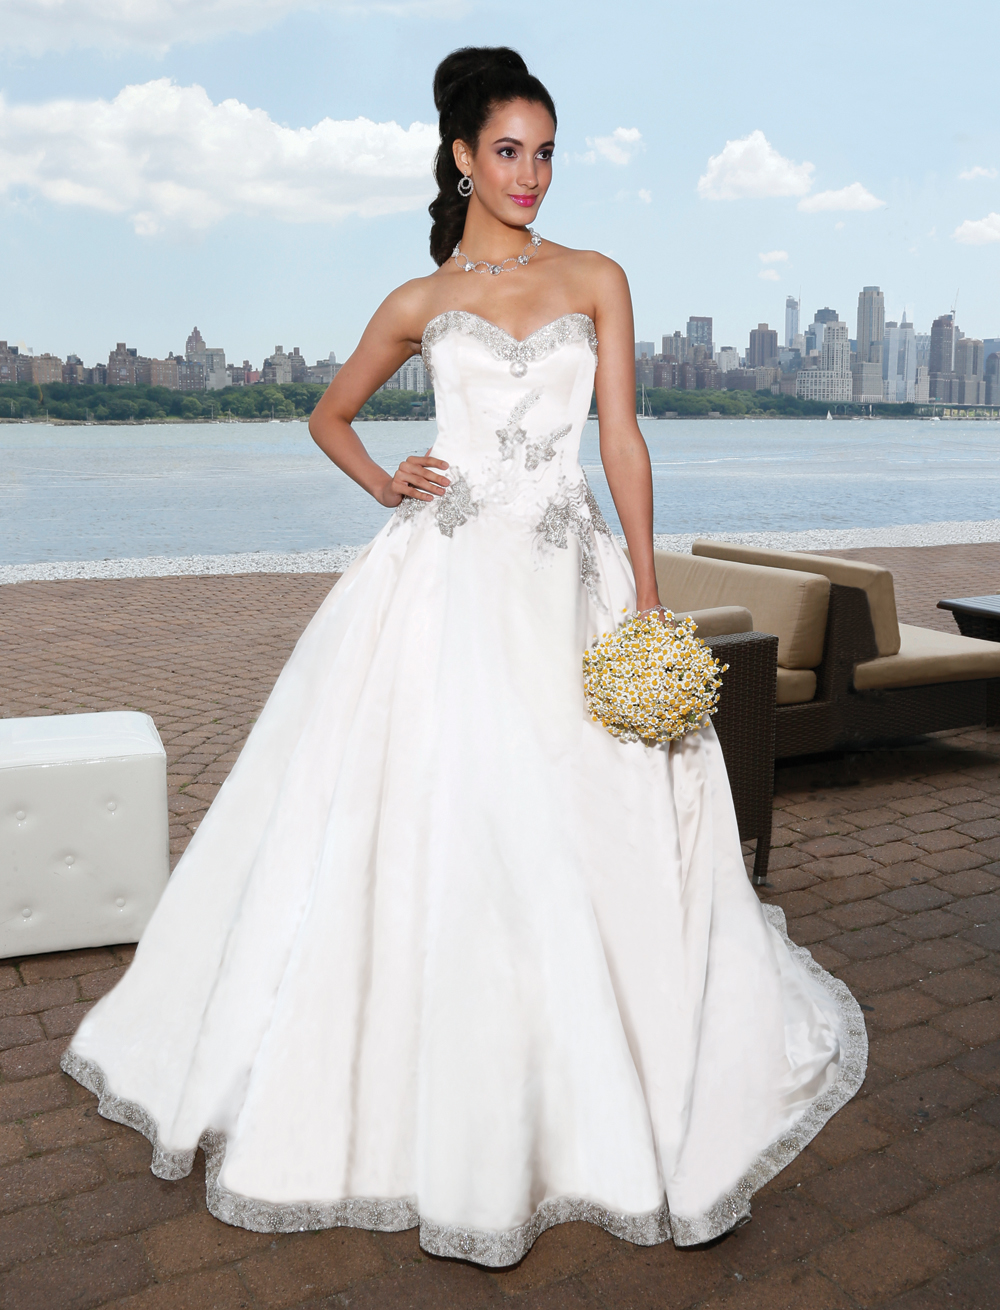 Style 322 | at Waterside Restaurant, North Bergen, NJ